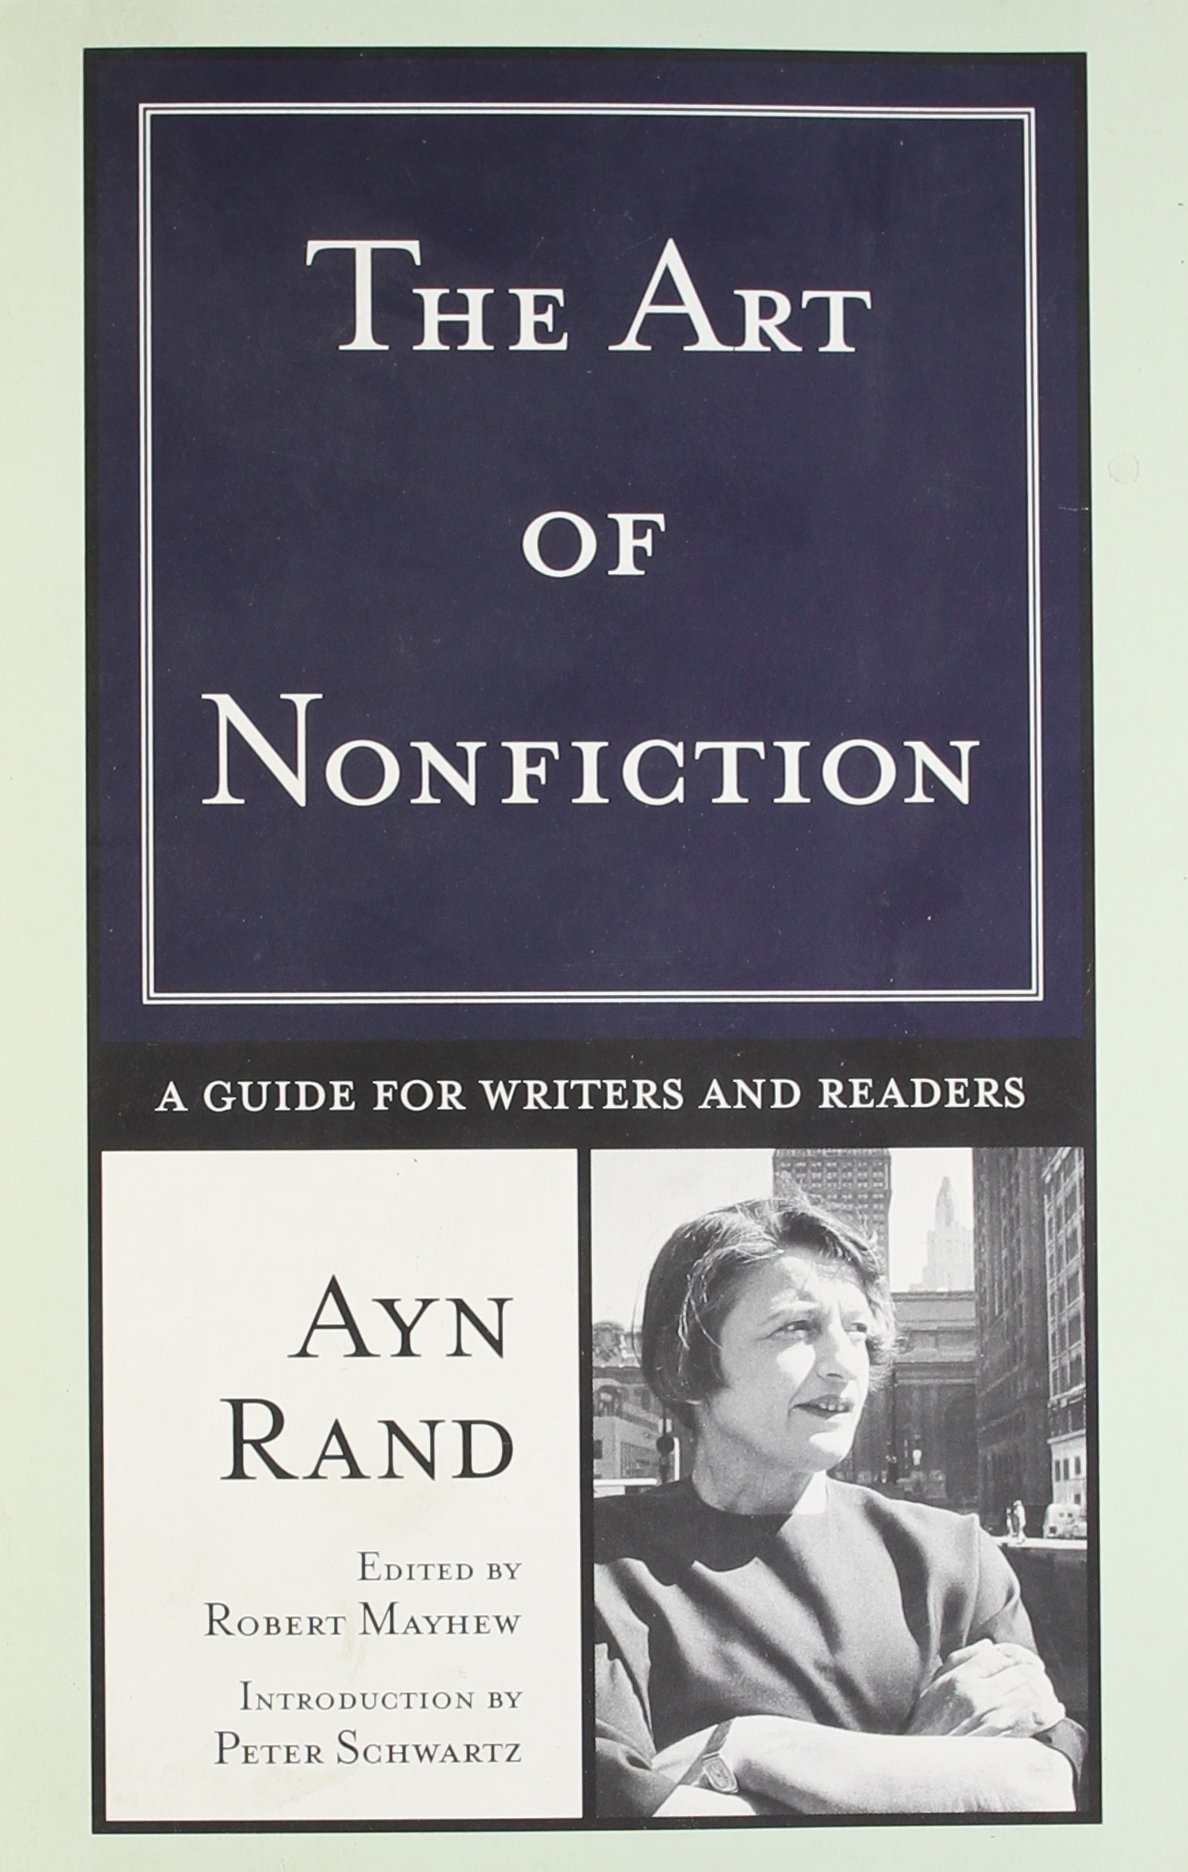 The Art Of Nonfiction: A Guide For Writers And Readers: Ayn Rand, Robert  Mayhew, Peter Schwartz: 9780452282315: Amazon: Books